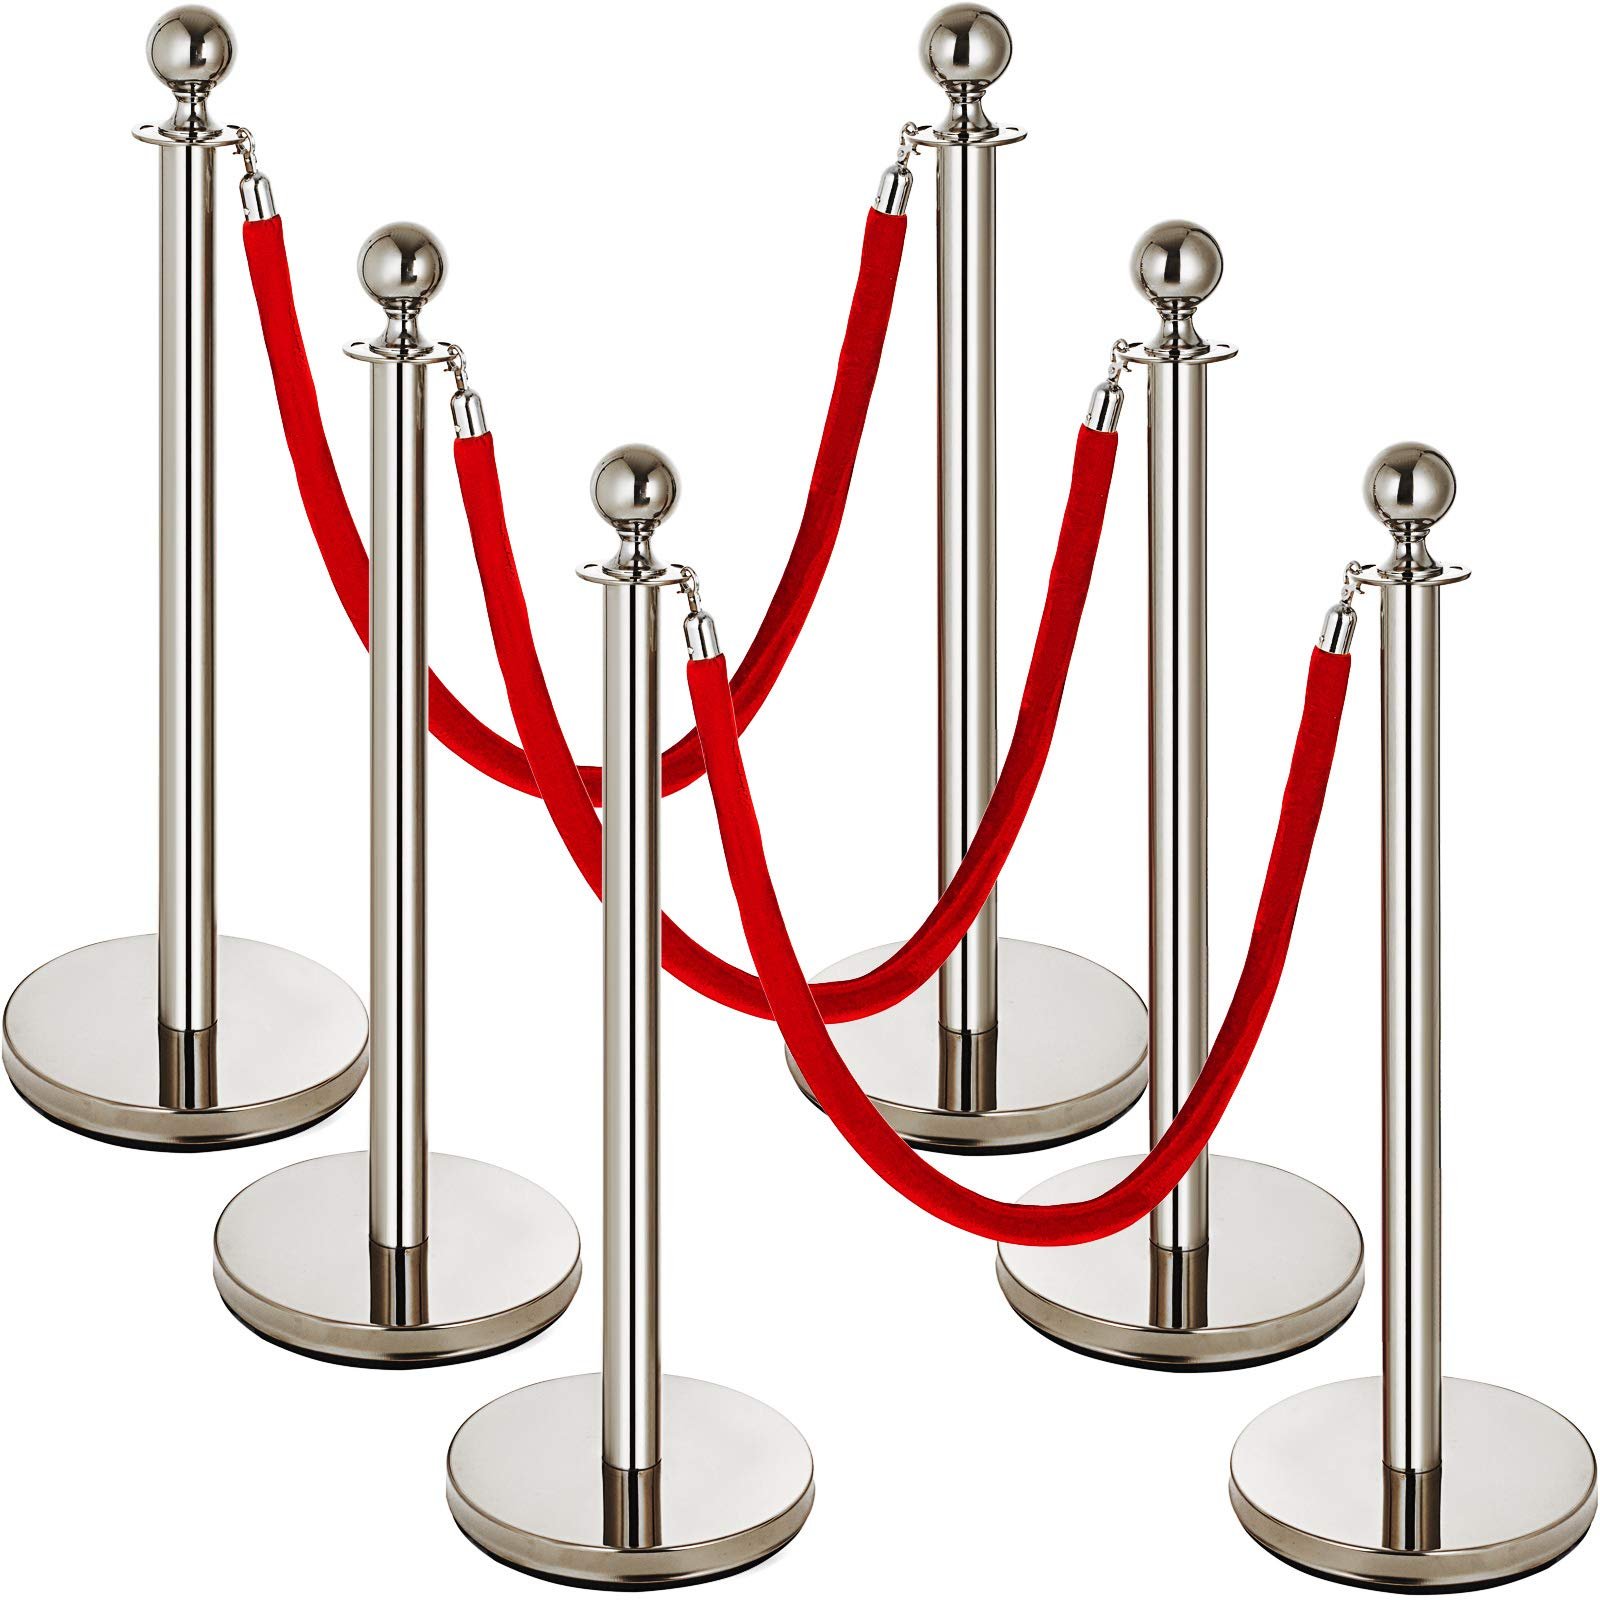 Mophorn 6 PCS Stainless Steel Stanchion Post Queue Red Rope Retractable 38In Silver Crowd Control Queue Line Barriers (Silver-Red Rope)